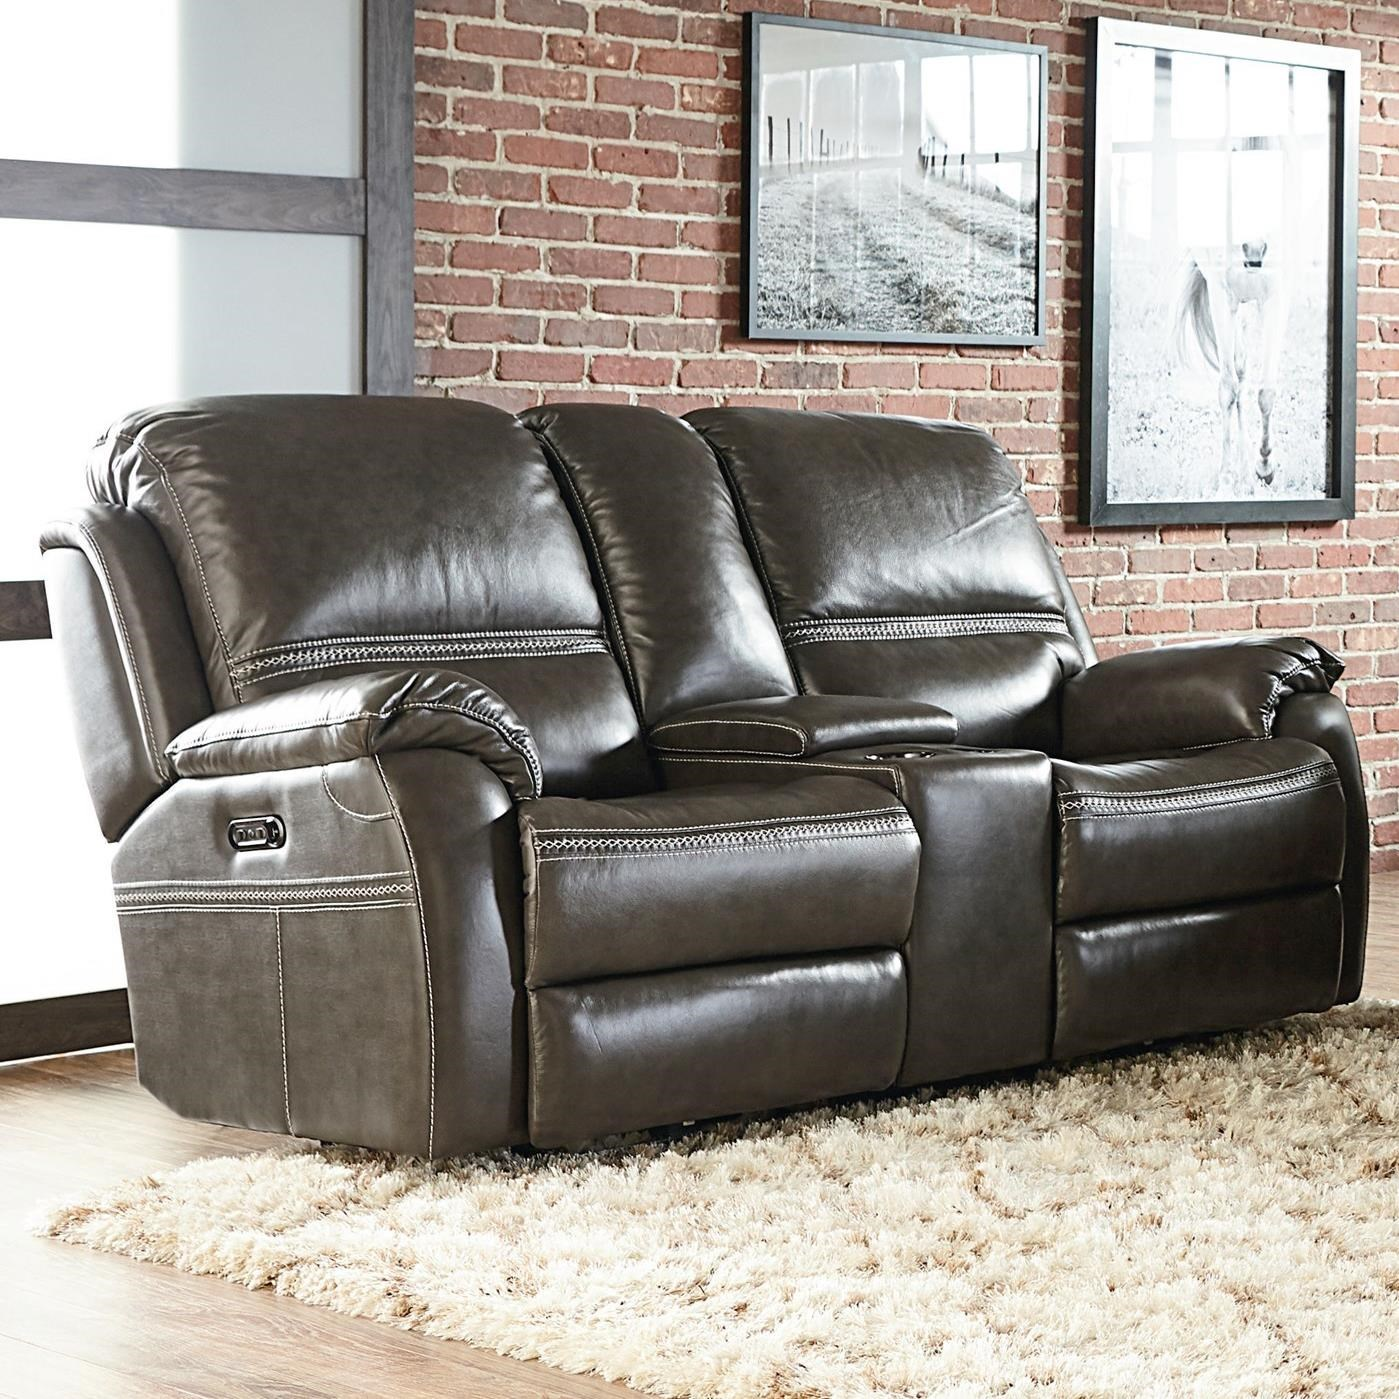 Williams - Club Level by Bassett Reclining Console Loveseat by Bassett at Bassett of Cool Springs